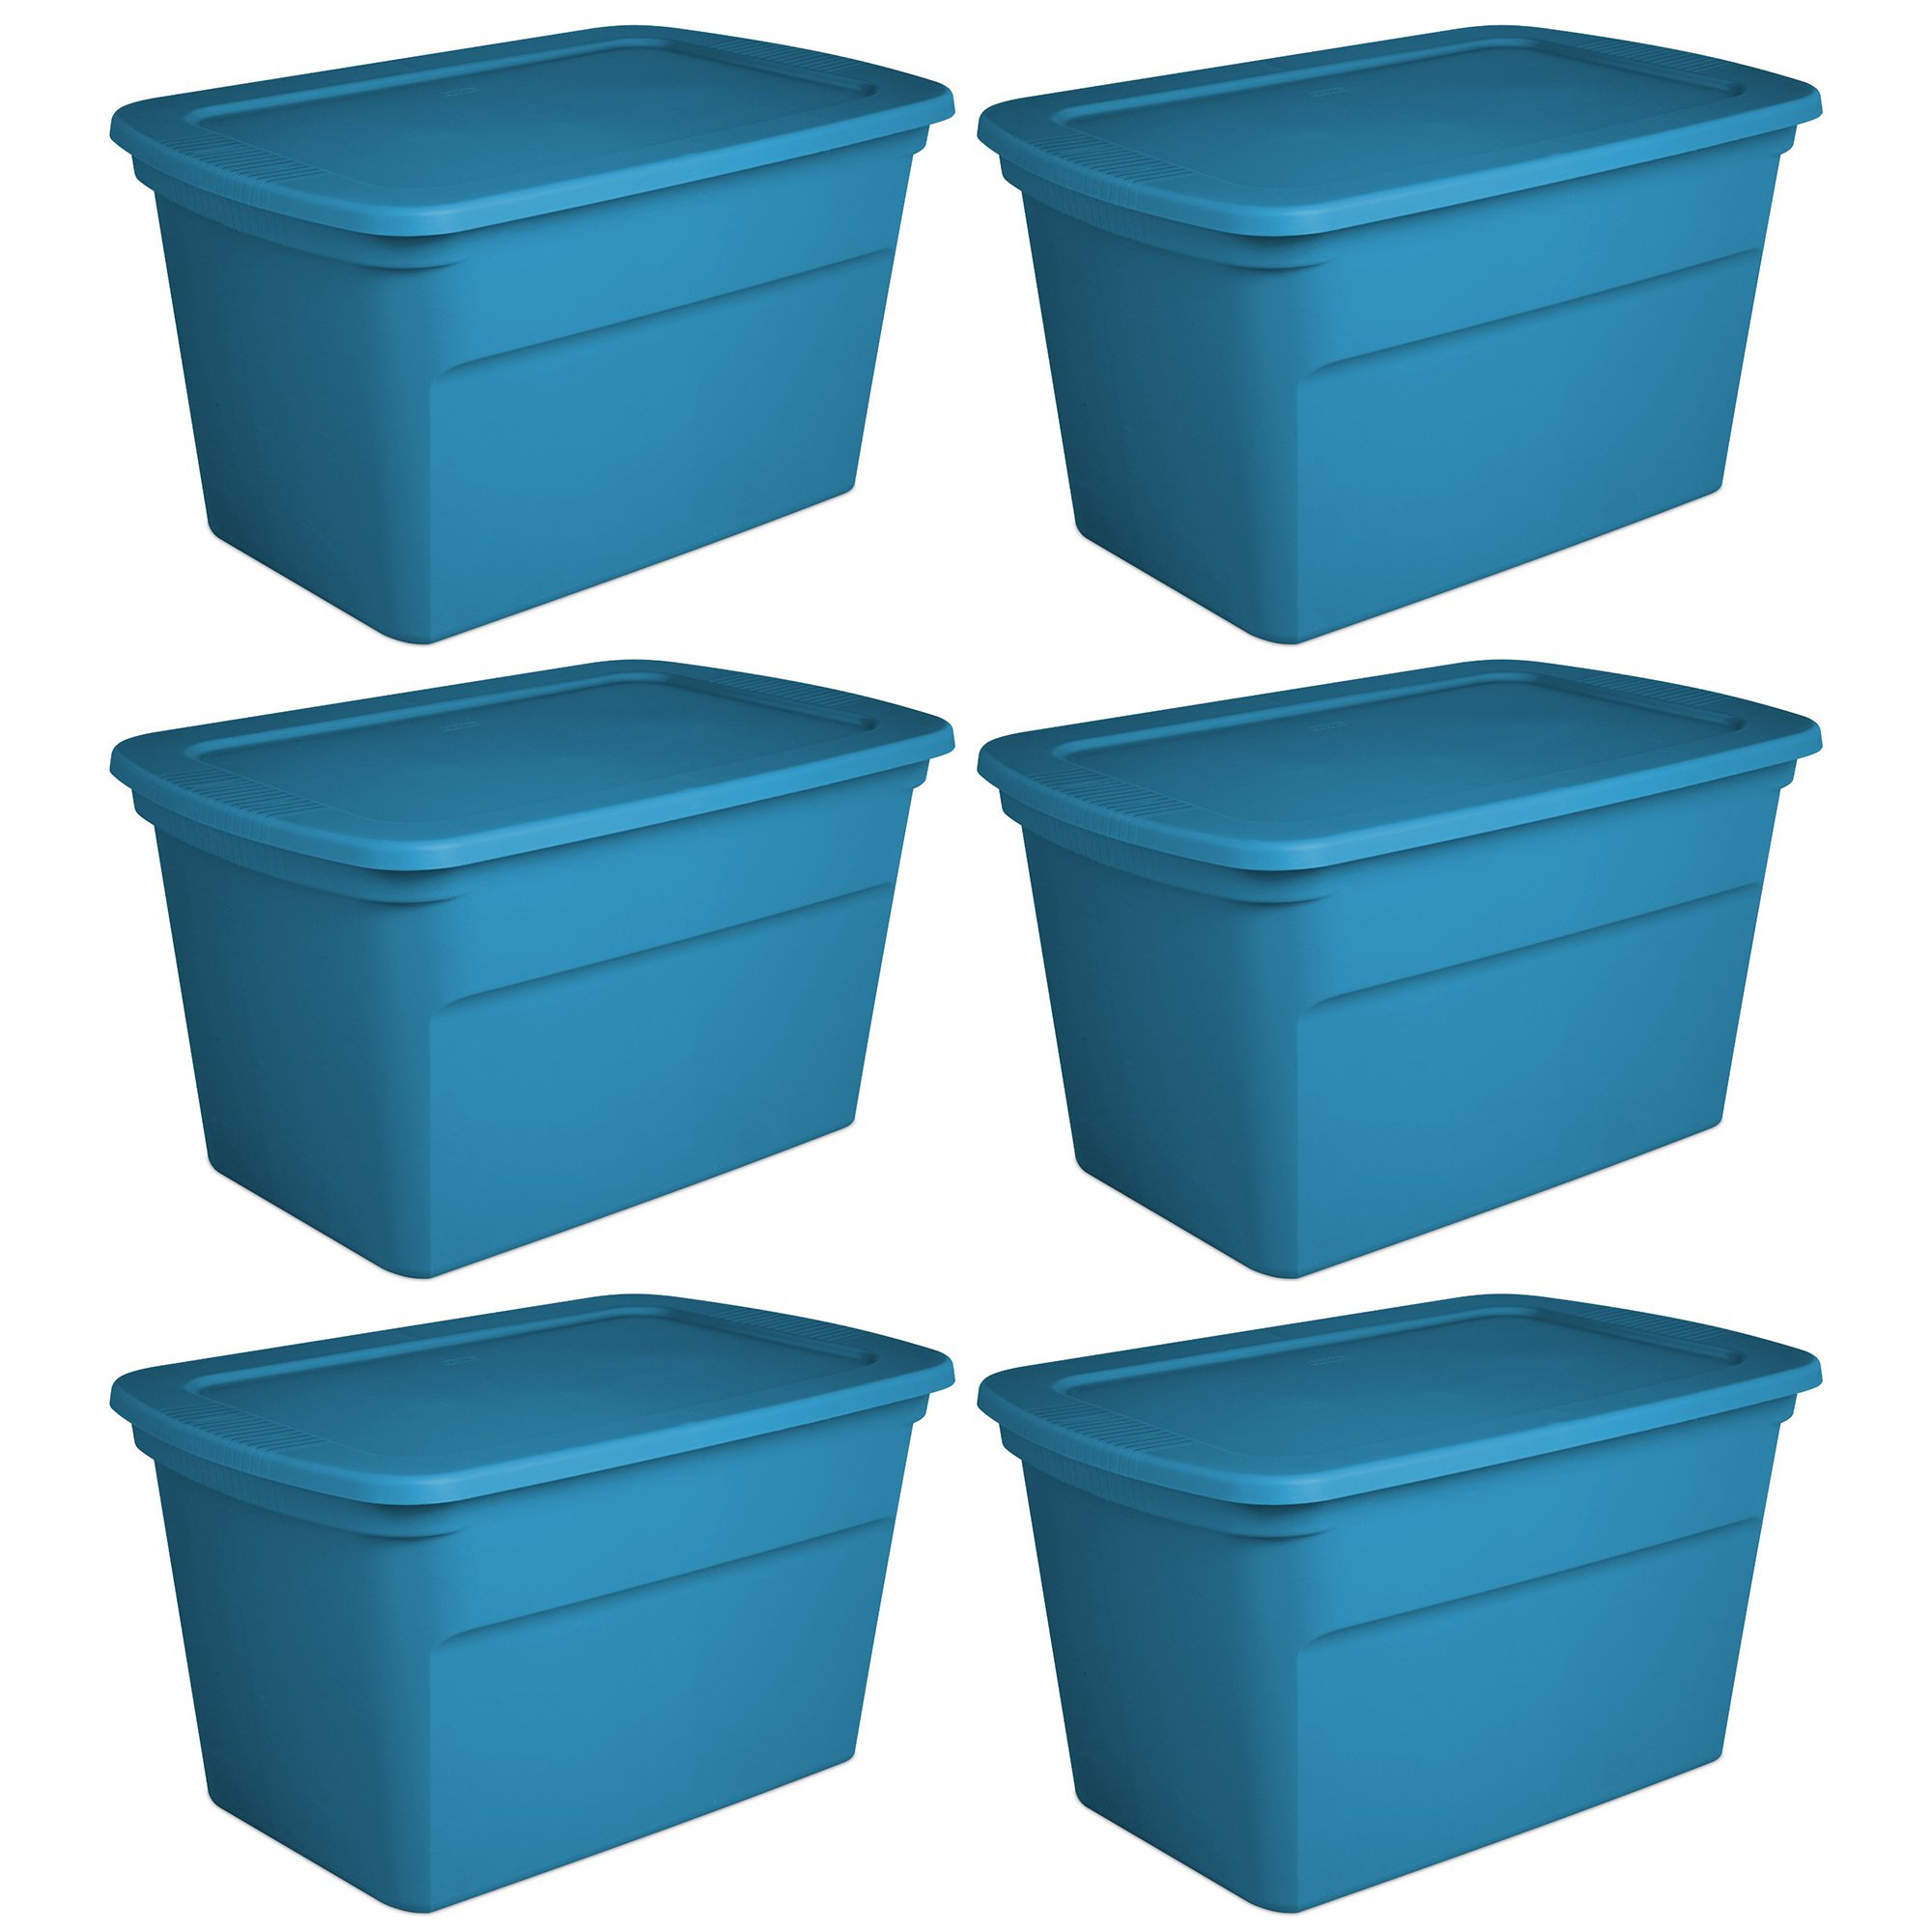 Sterilite 30 Gallon Plastic Storage Tote, Blue Aquarium (6 Pack) | 17364306